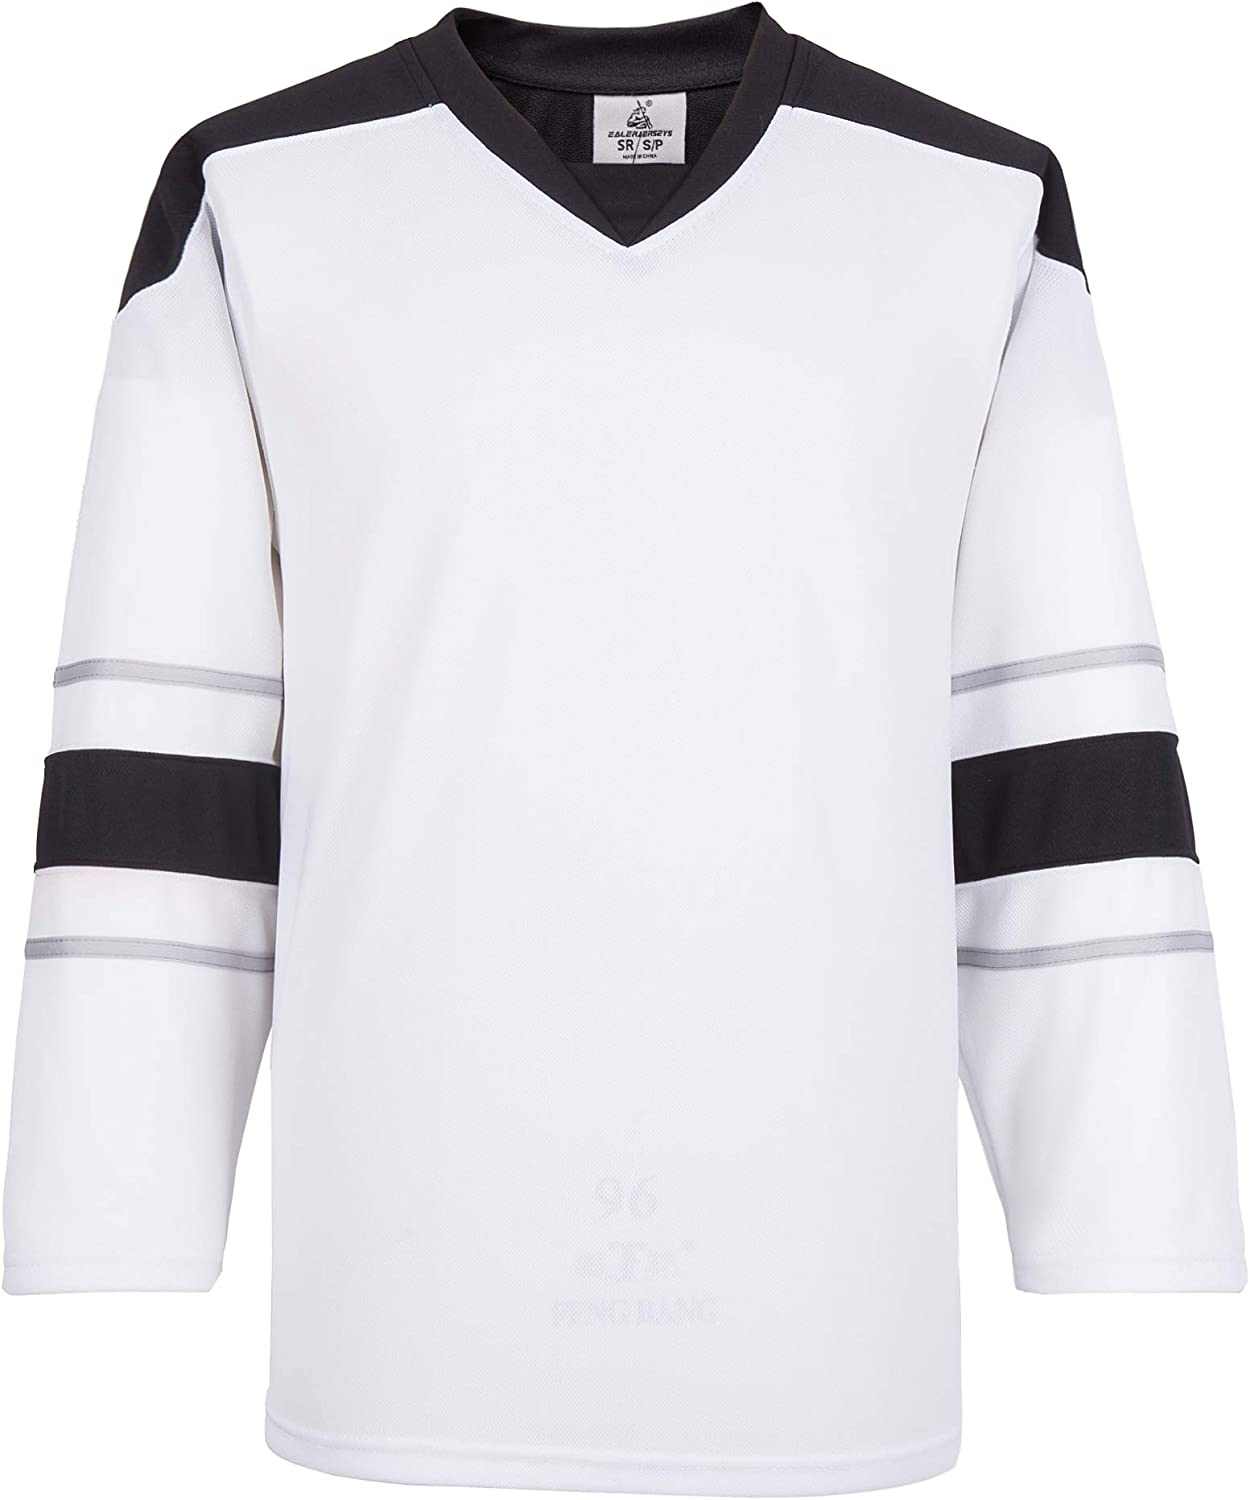 Adult and Youth EALER H900 Series Blank Ice Hockey League Sports Practice Jersey for Men